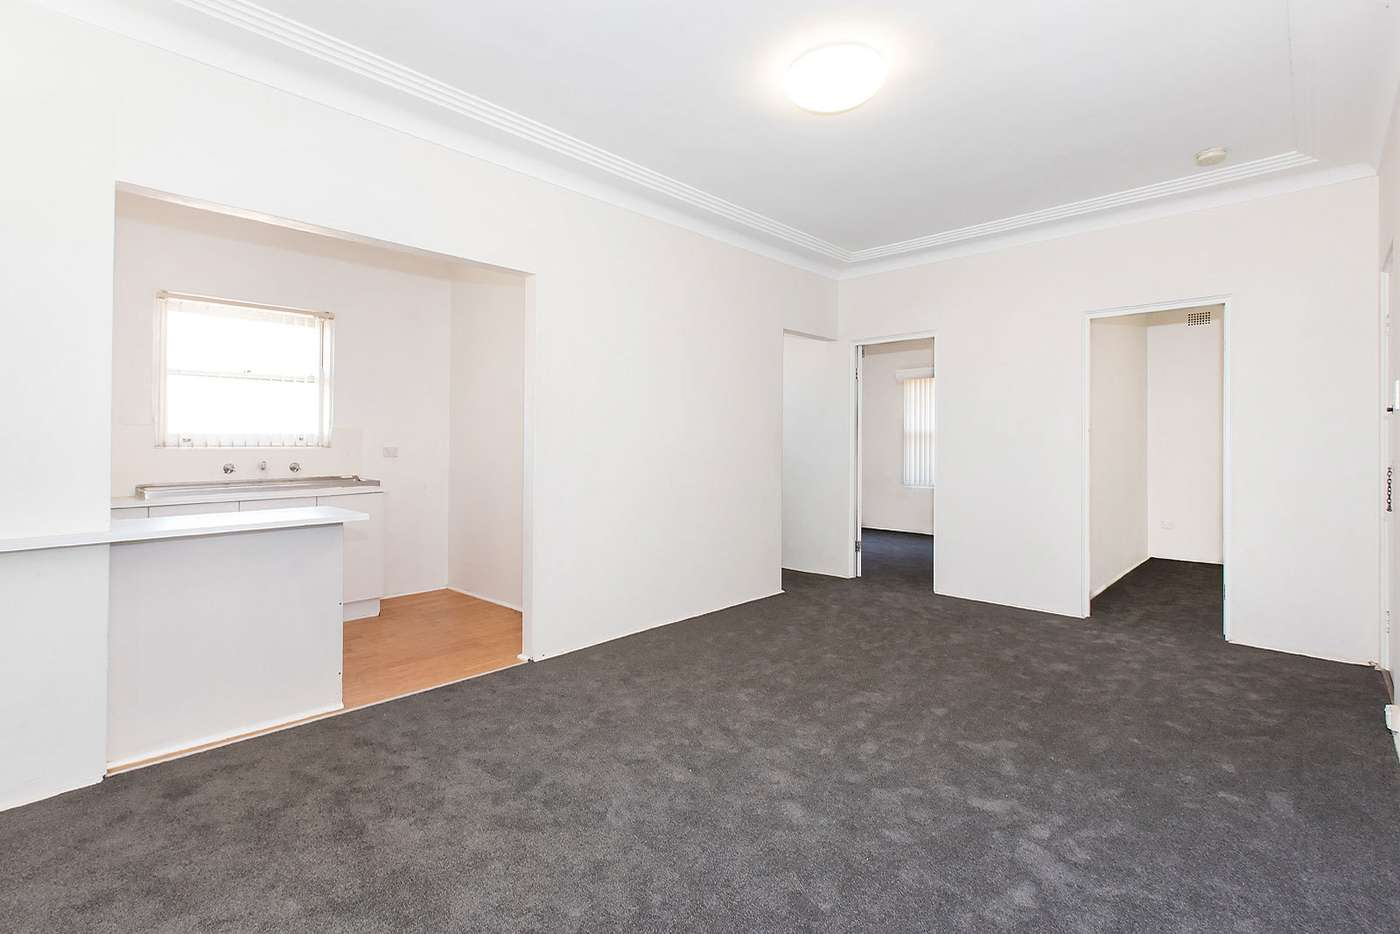 Main view of Homely apartment listing, 6/157 Bestic Street, Brighton-le-sands NSW 2216